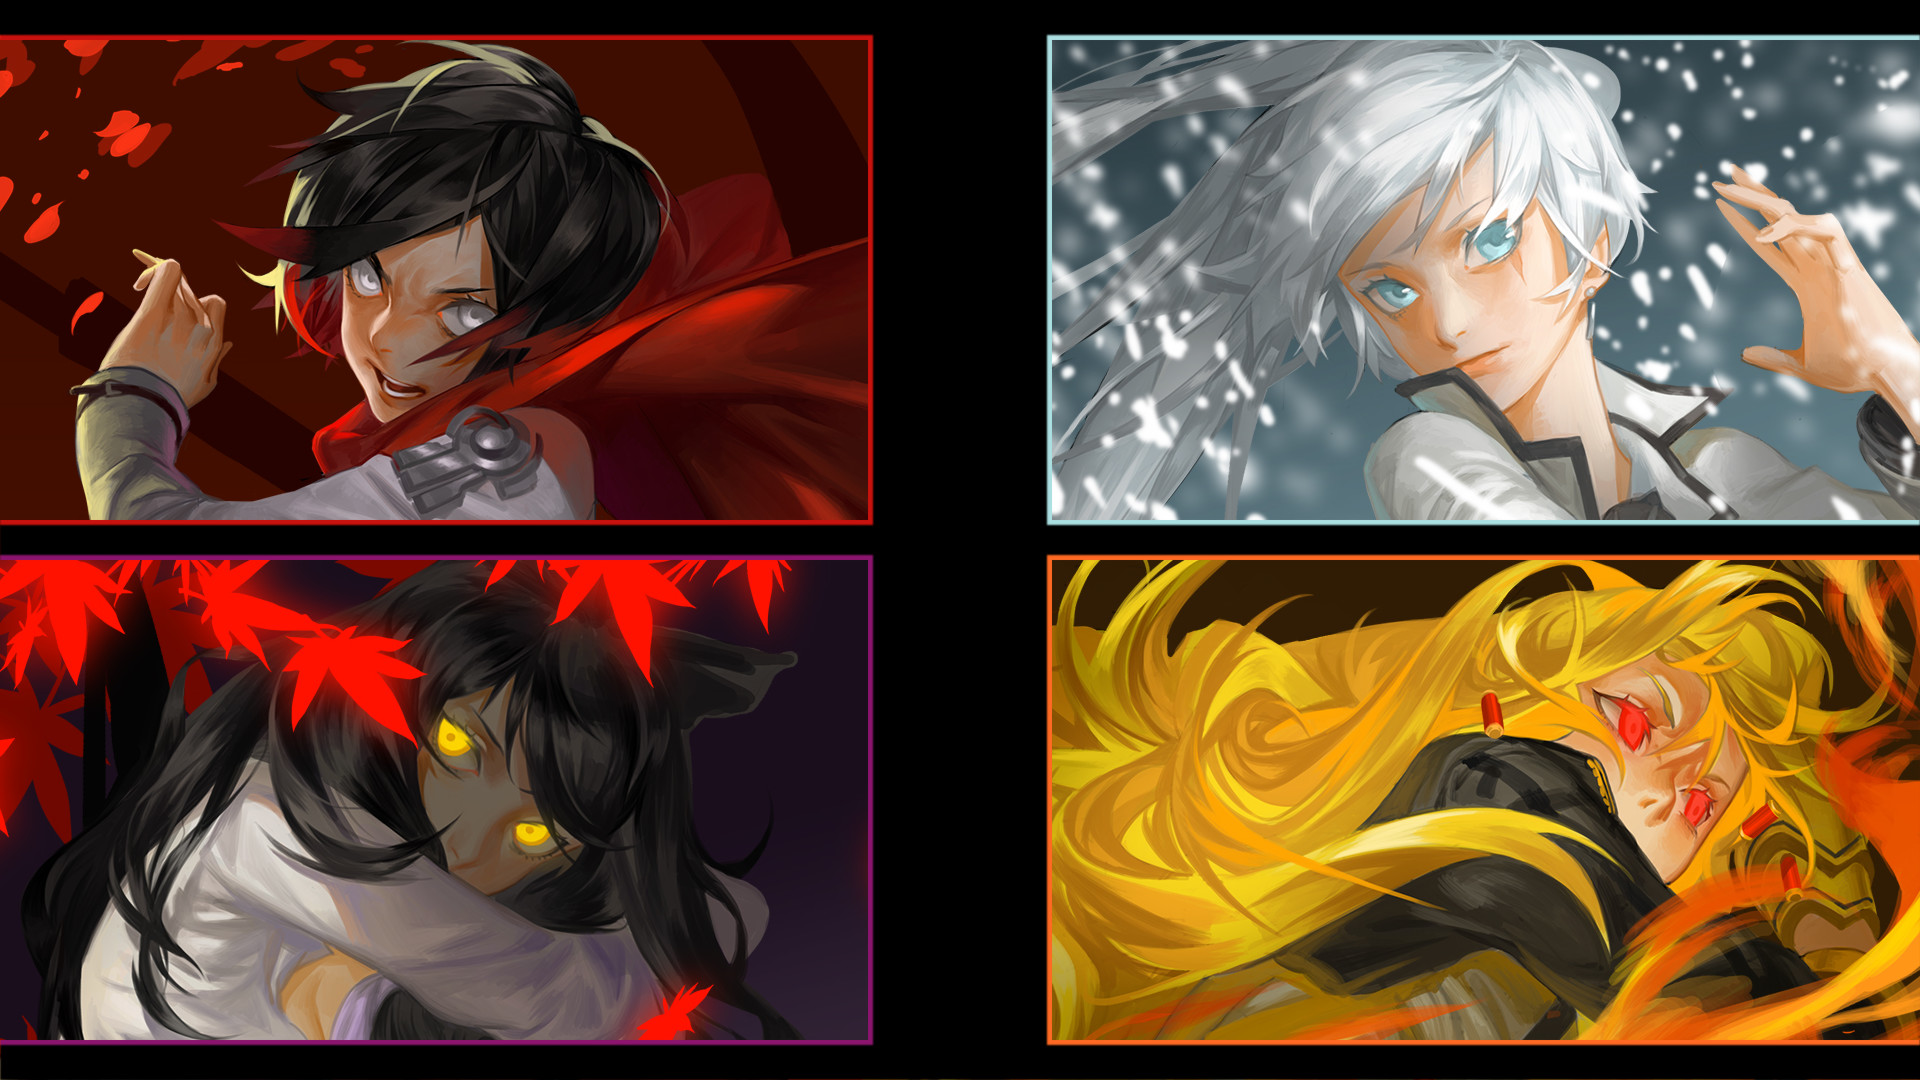 Res: 1920x1080, Anime RWBY Ruby Rose Weiss Schnee Yang Xiao Long Blake Belladonna Wallpaper